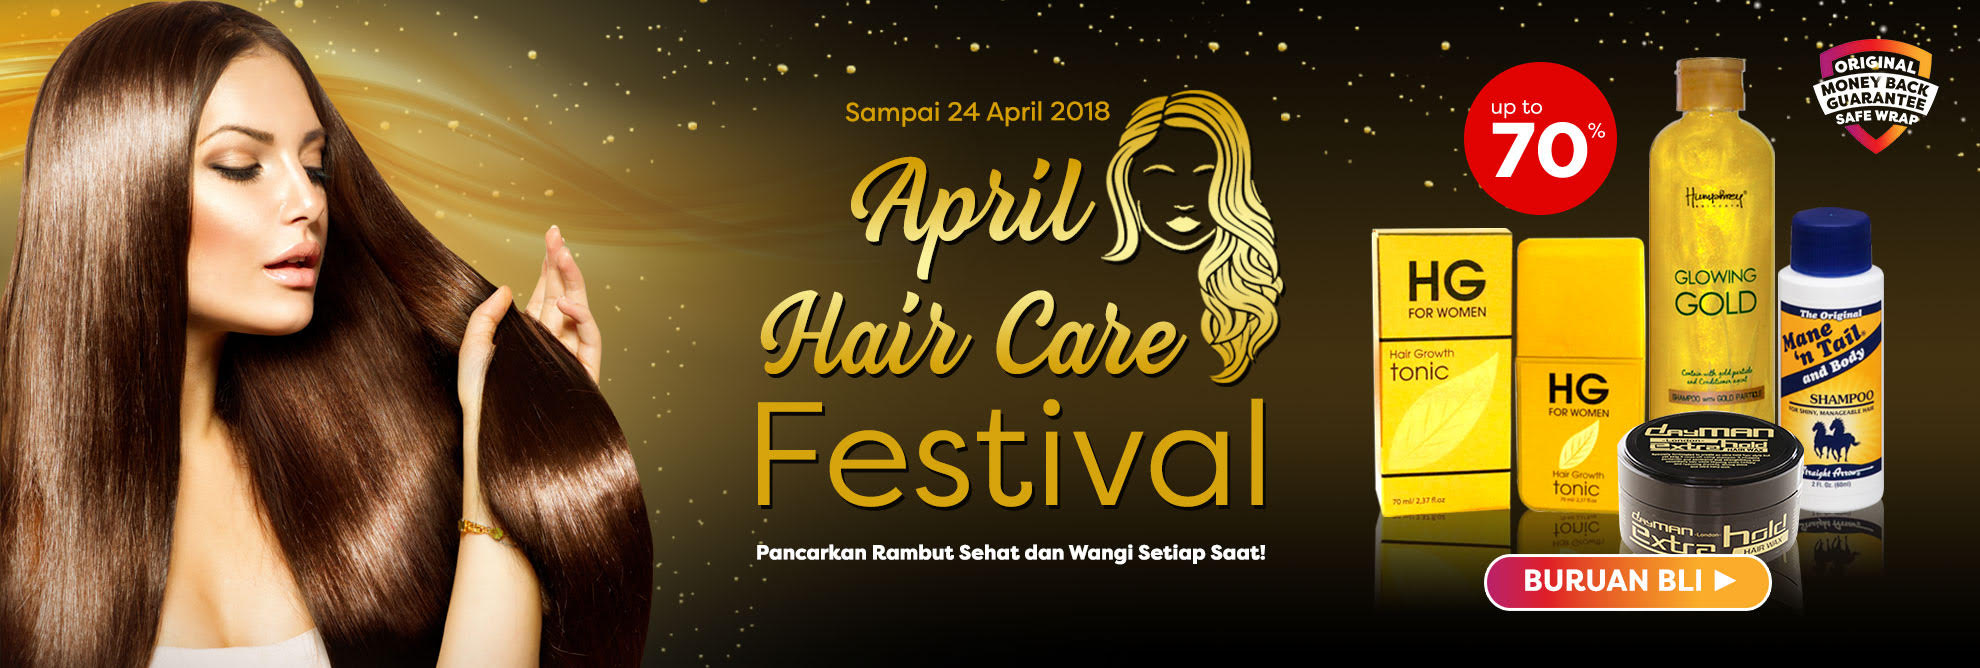 Promo april-hair-care-festival